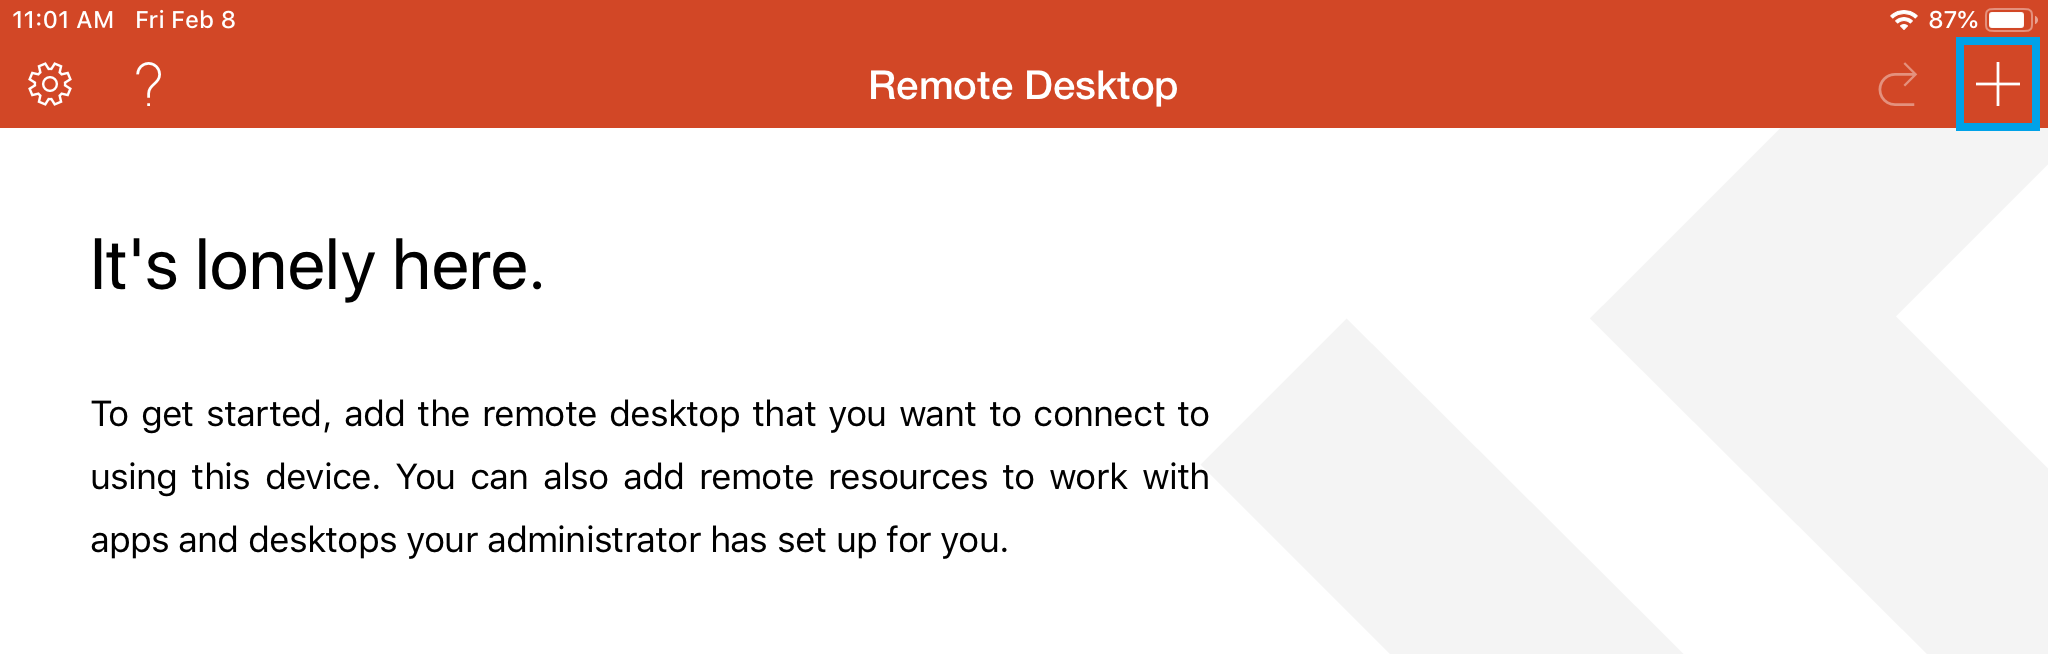 How to Use Remote Desktop on Mac and iPad?